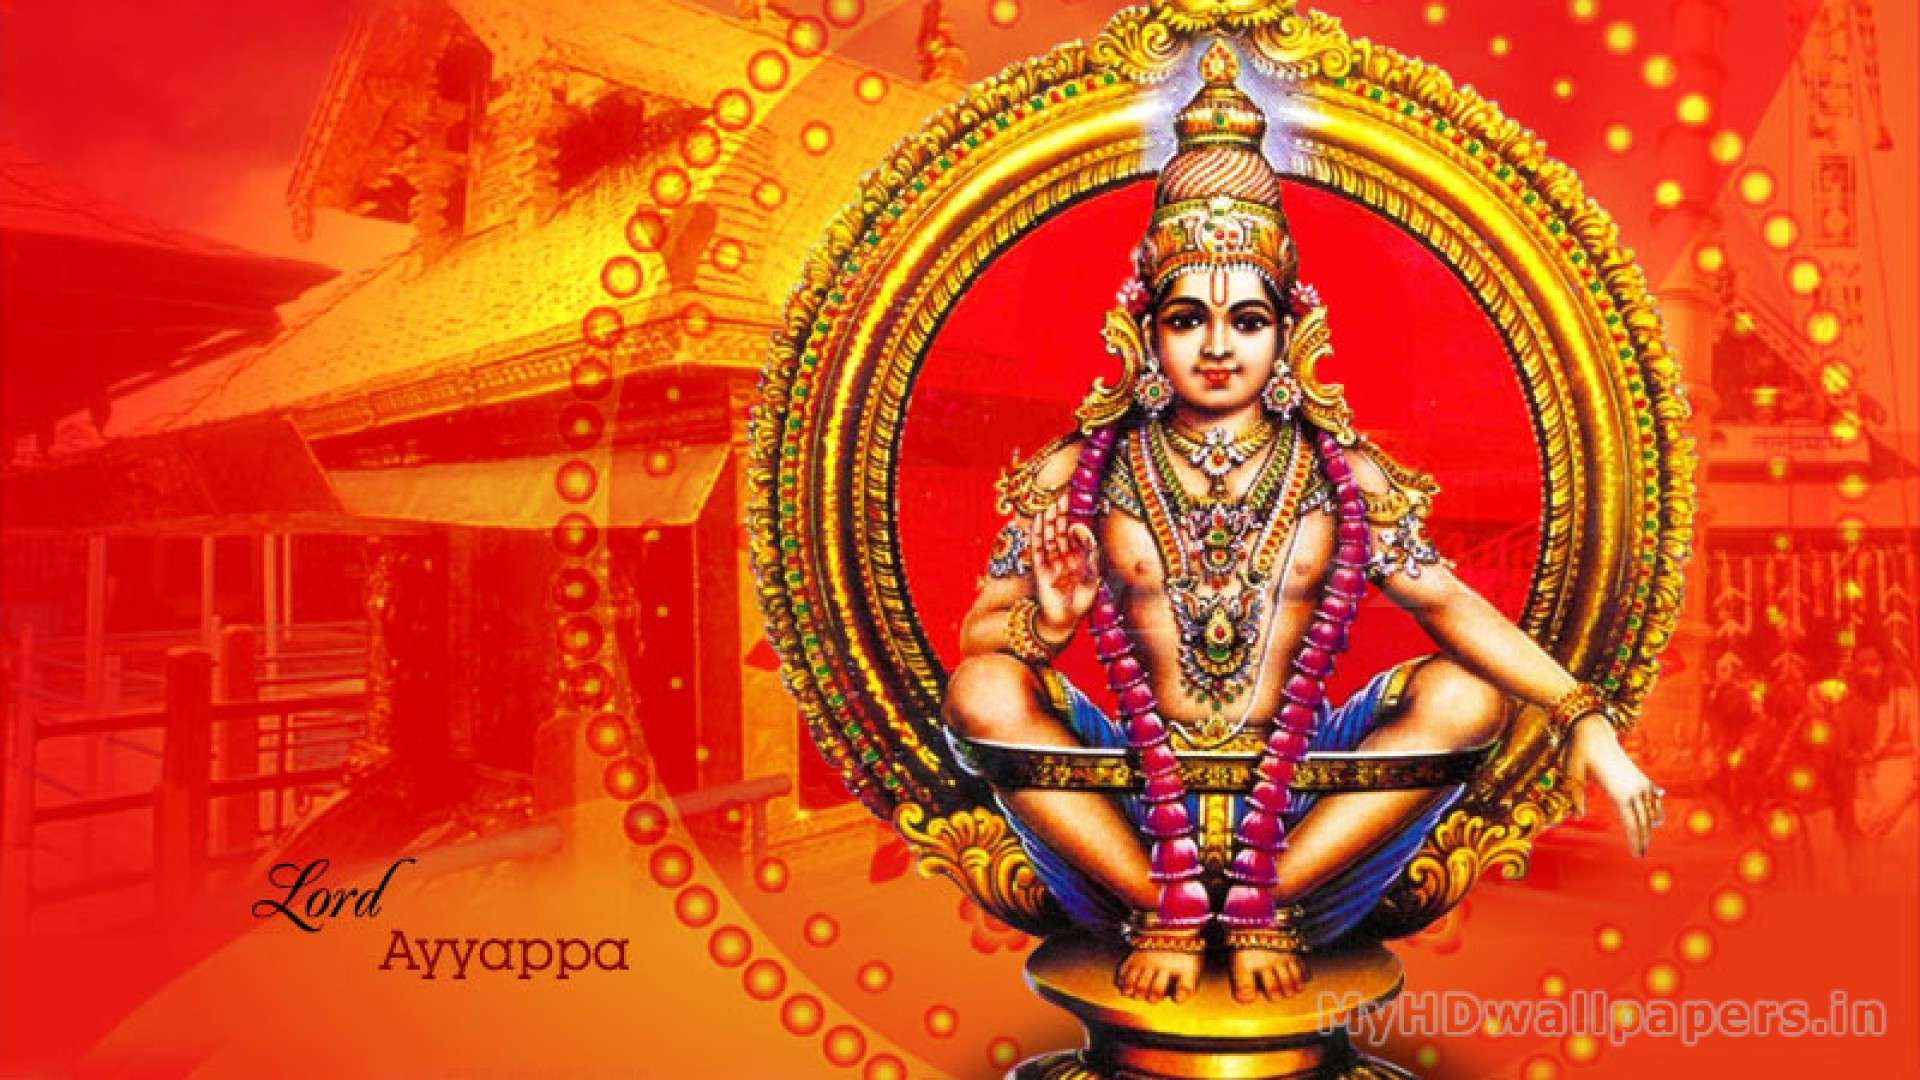 Ayyappan 3d Wallpaper Lord Ayyappa Hd Wallpapers